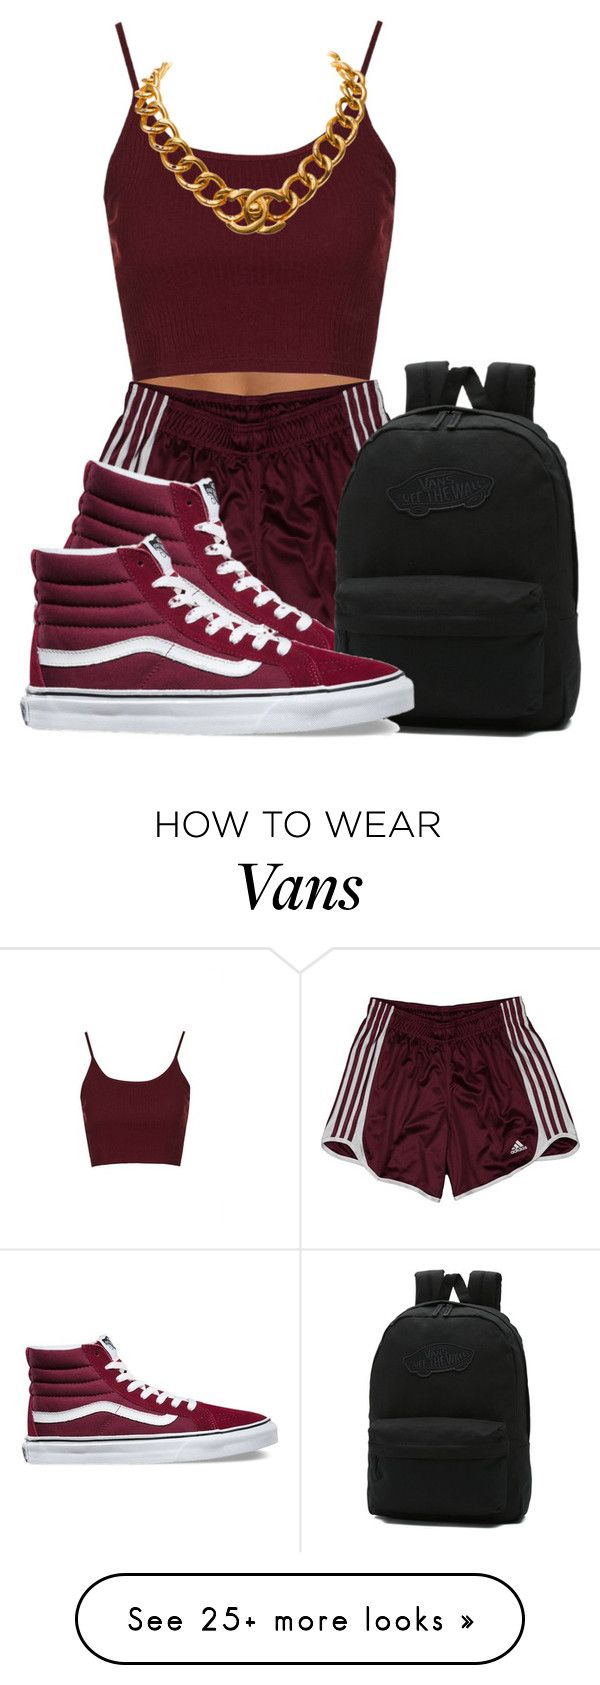 """❤️"" by raquelregina on Polyvore featuring Topshop, adidas, Vans and Chanel"